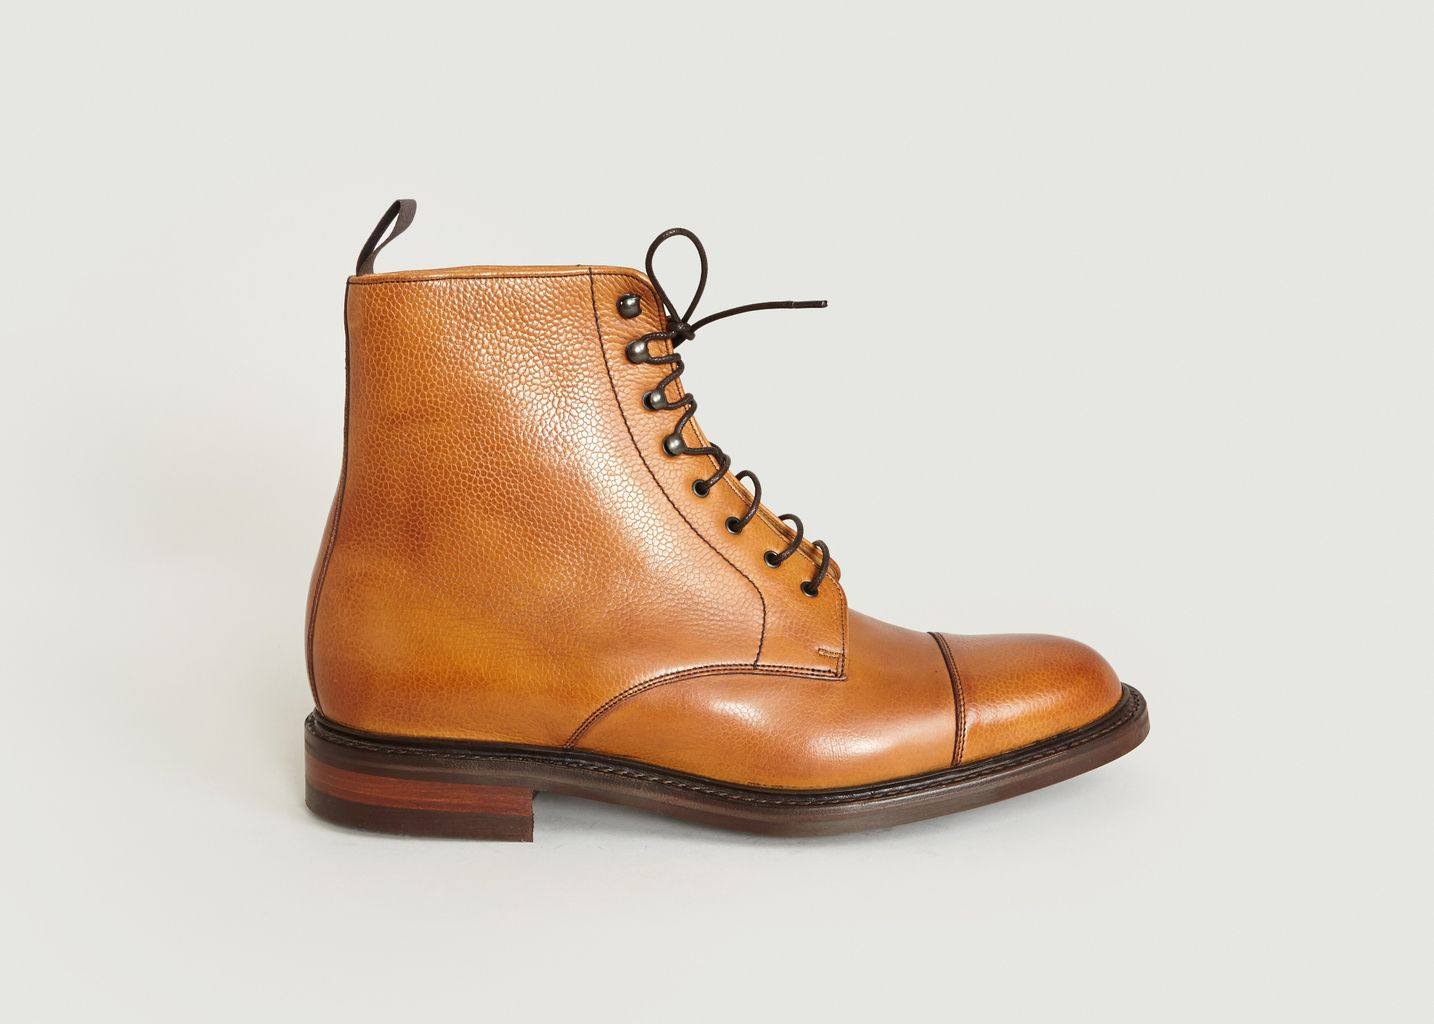 a90e0849ee5 Bottines Lambourn Camel Barker Shoes